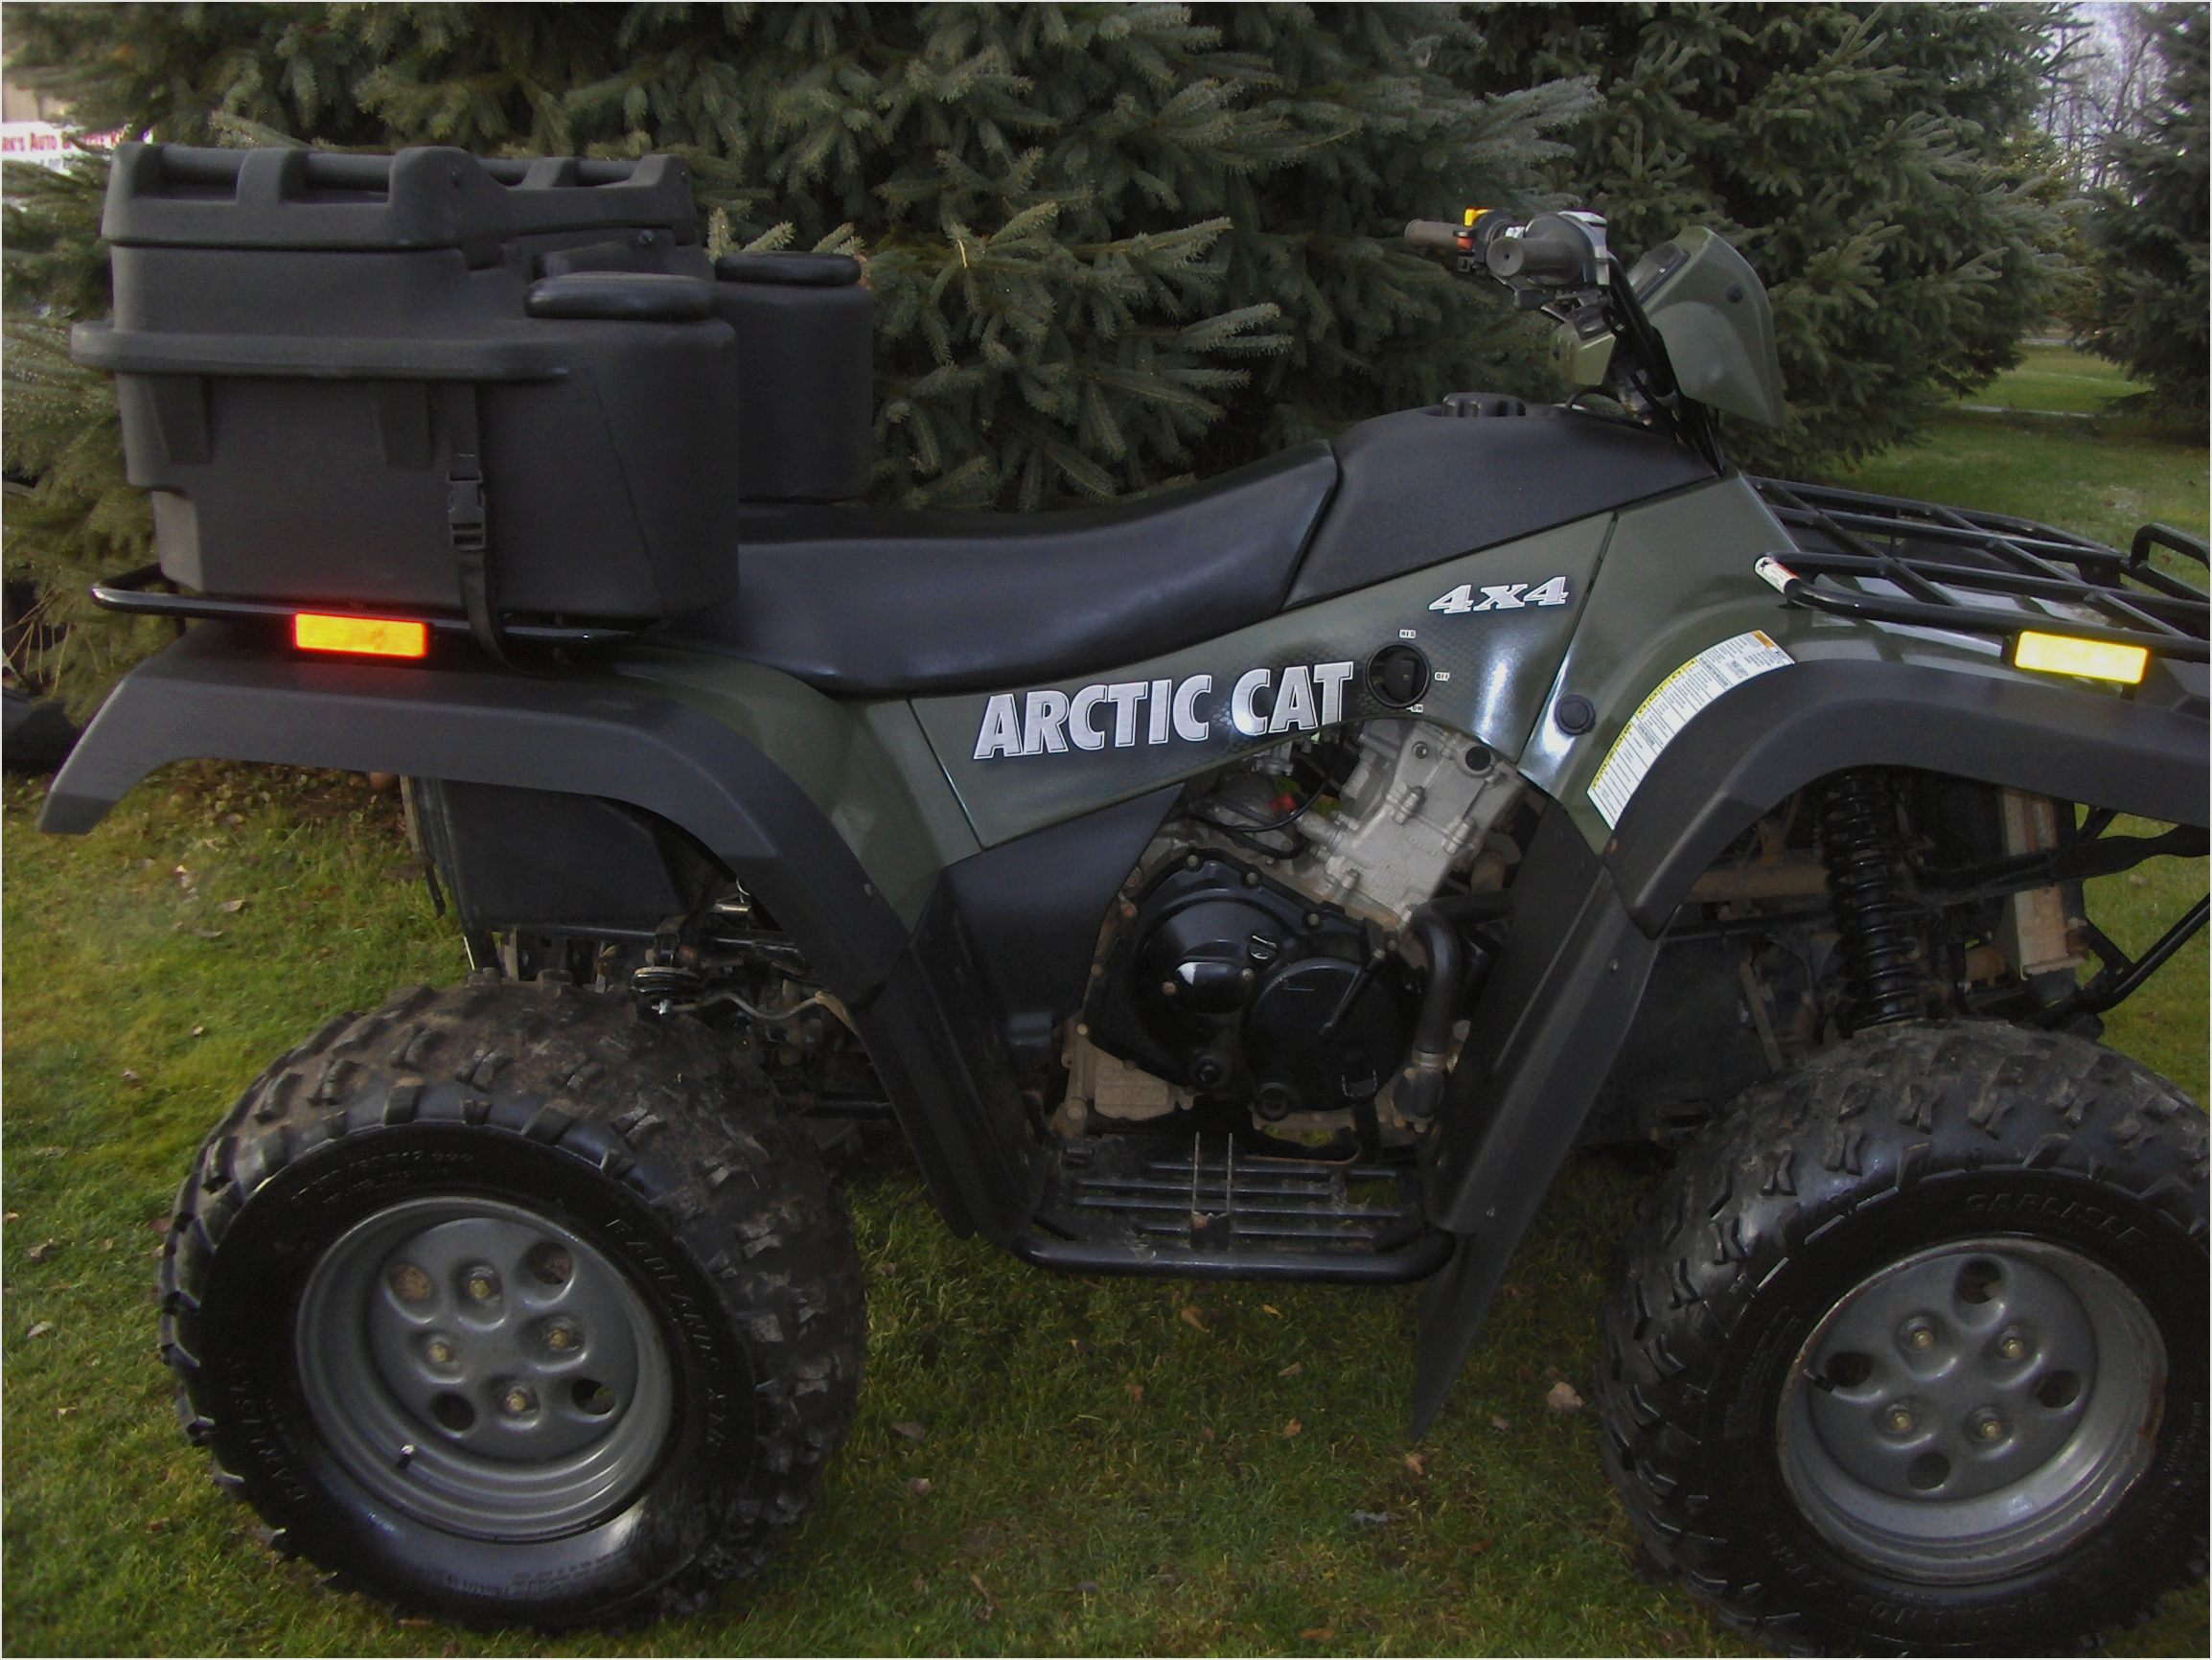 Arctic Cat 500 2000 images #155877